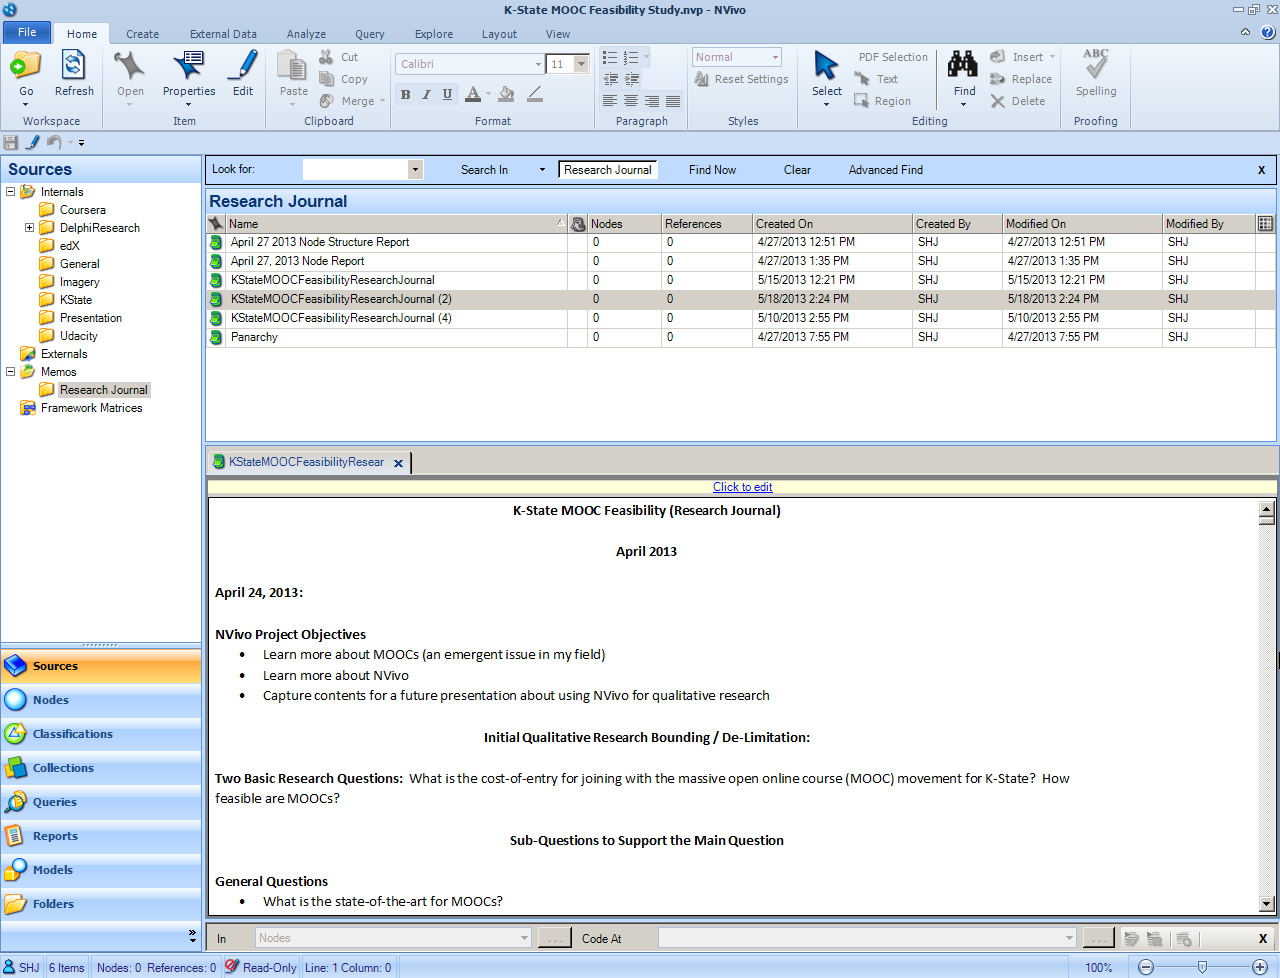 Research Journaling in NVivo